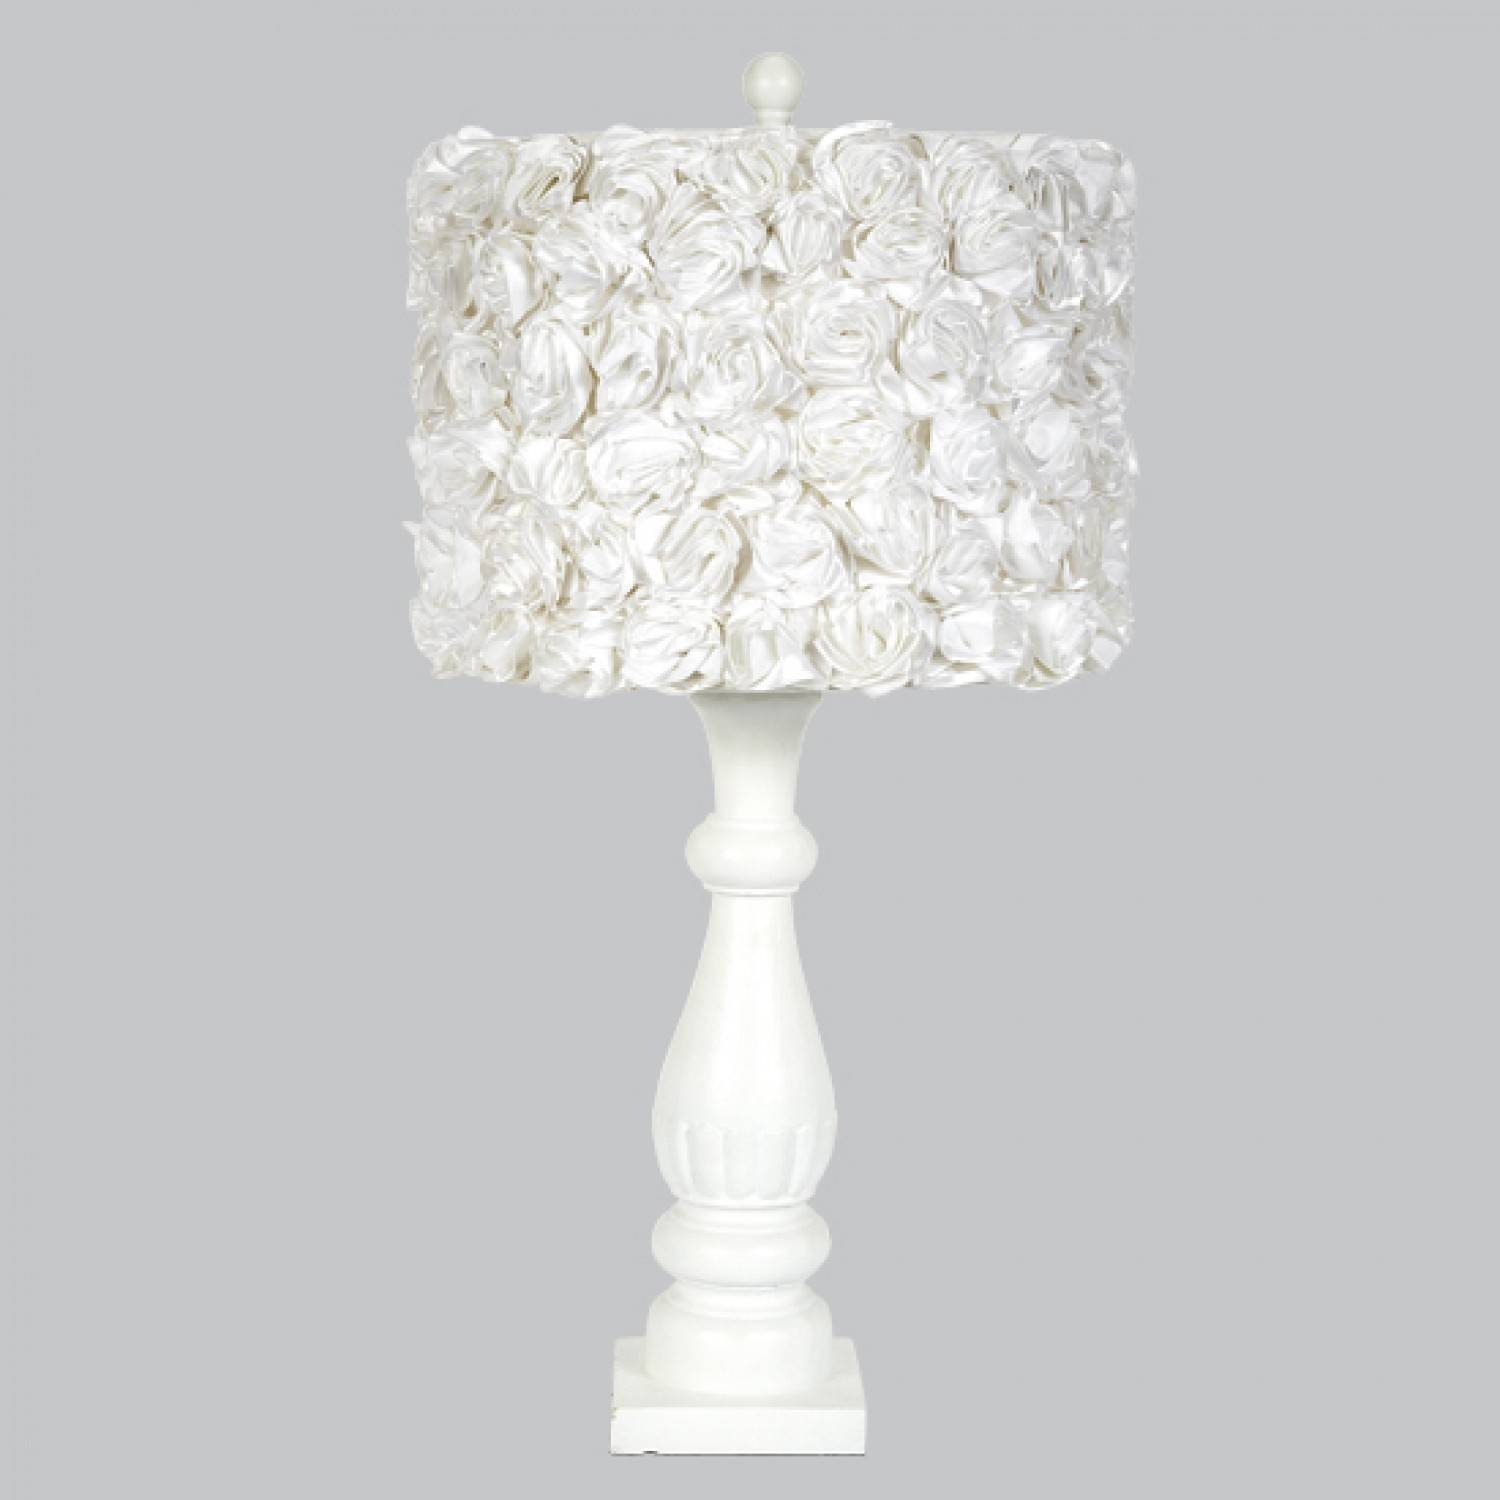 White Lamp Shades John Lewis | Better Lamps pertaining to John Lewis Lights Shades (Image 15 of 15)